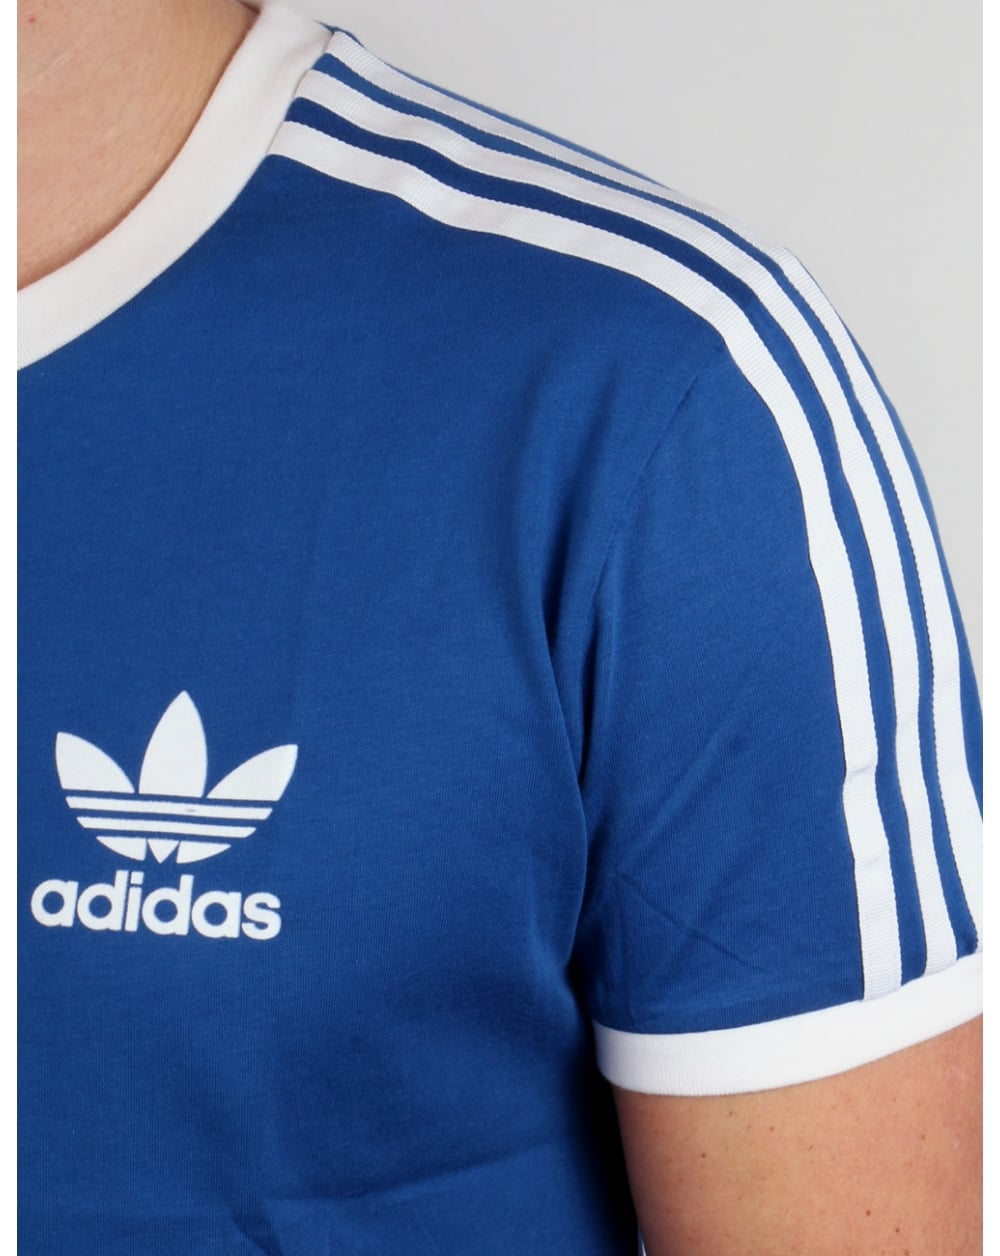 Adidas originals retro 3 stripes t shirt adidas blue for Adidas lotus t shirt